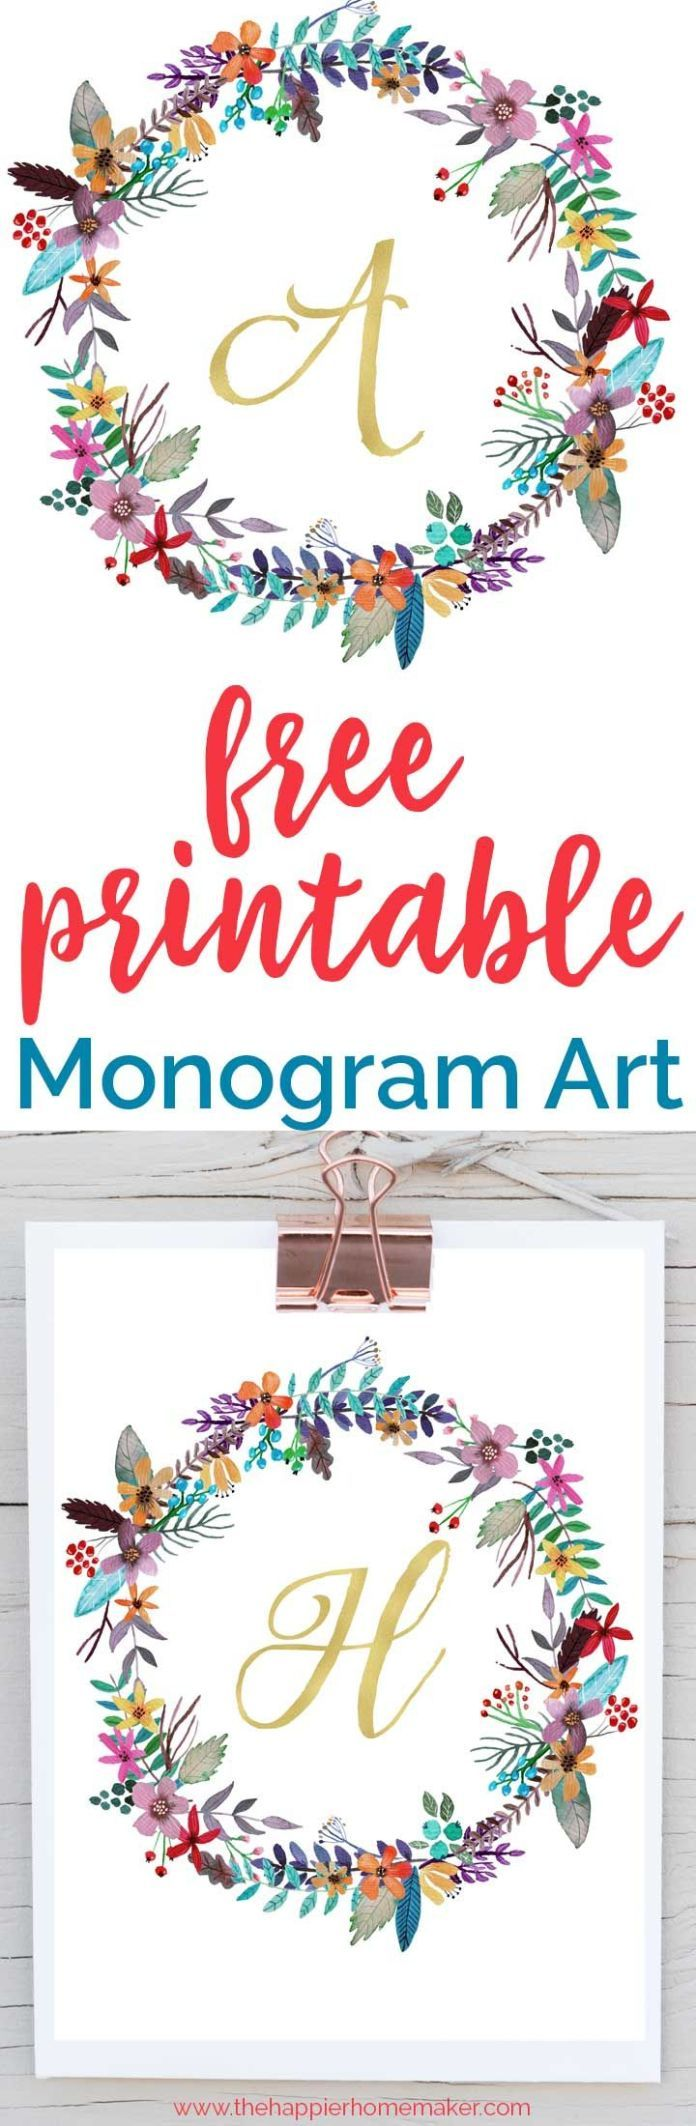 Diy Crafts Ideas : Beautiful free printable monogram art for your home-these would be so pretty in